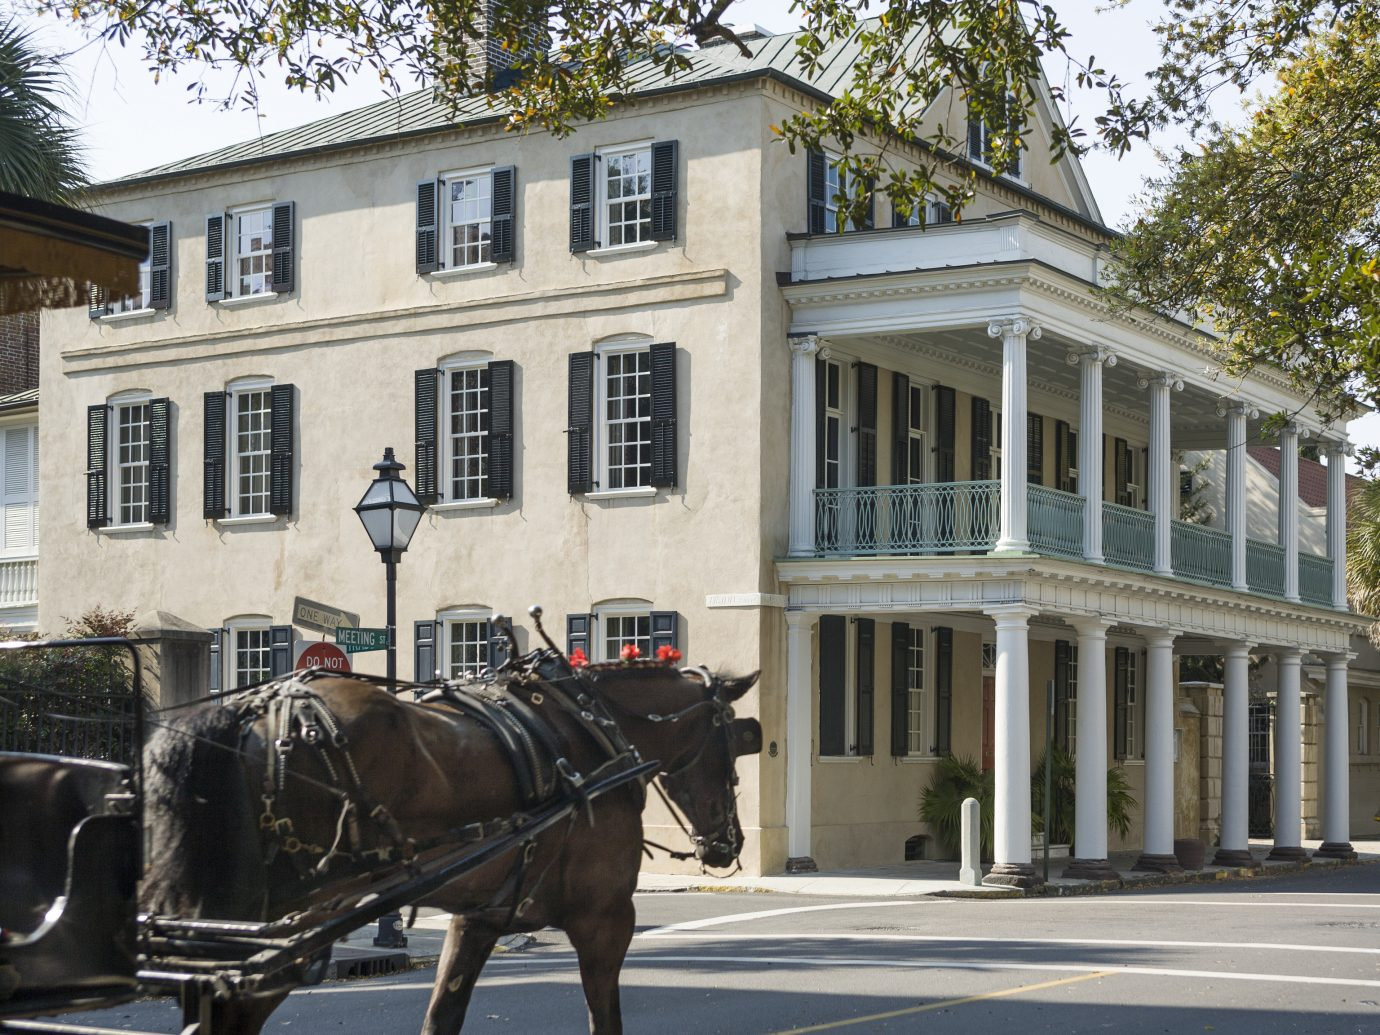 Trip Ideas building carriage outdoor horse road drawn pulling tree street driving cart pulled transport vehicle house horse-drawn vehicle home horse and buggy tourist attraction attached